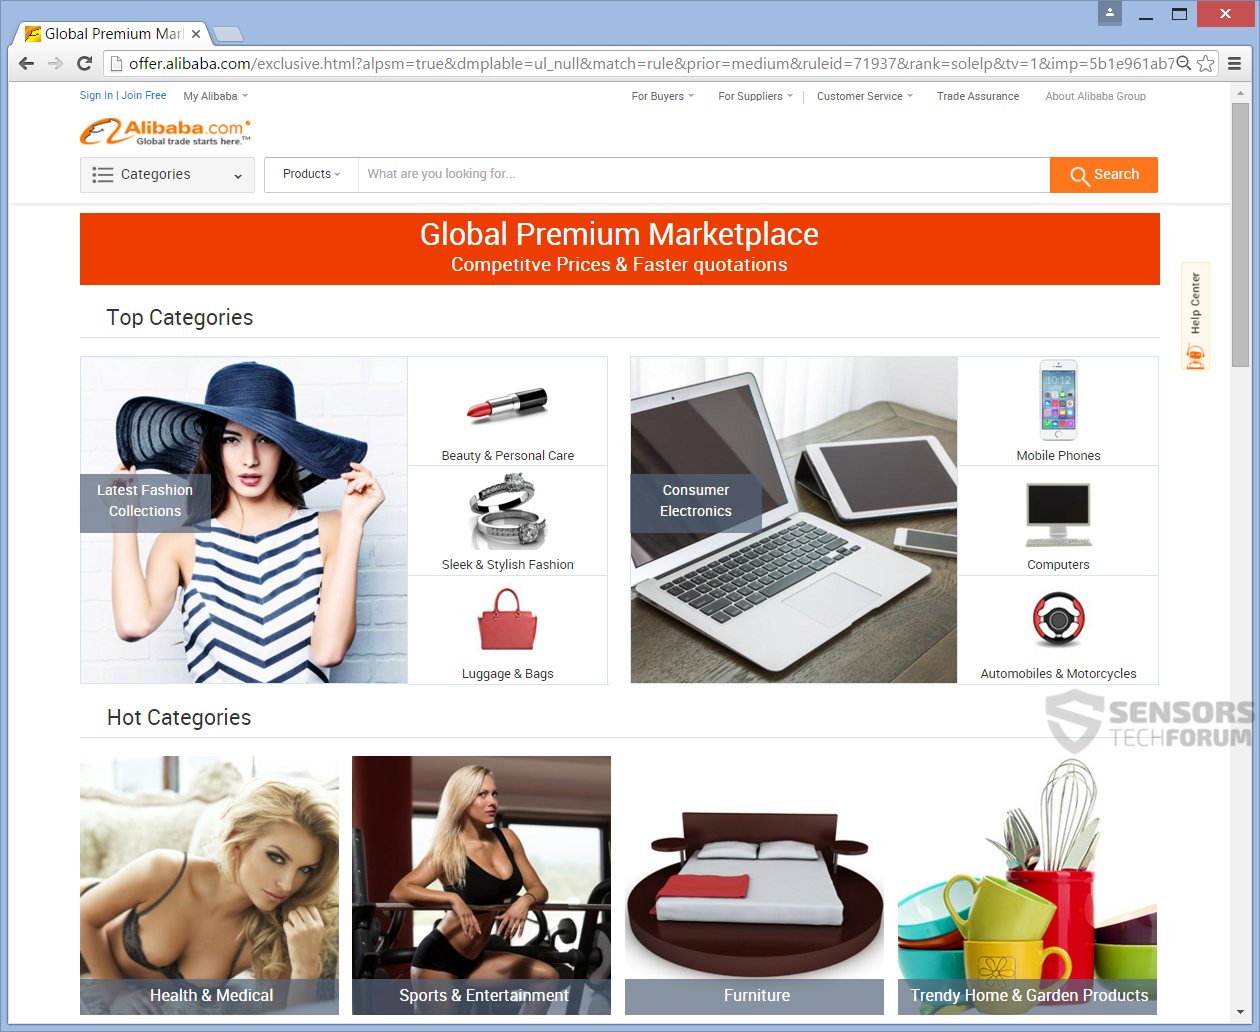 STF-always-new-soft-alwaysnewsoft-traffic-portal-net-offer-alibaba